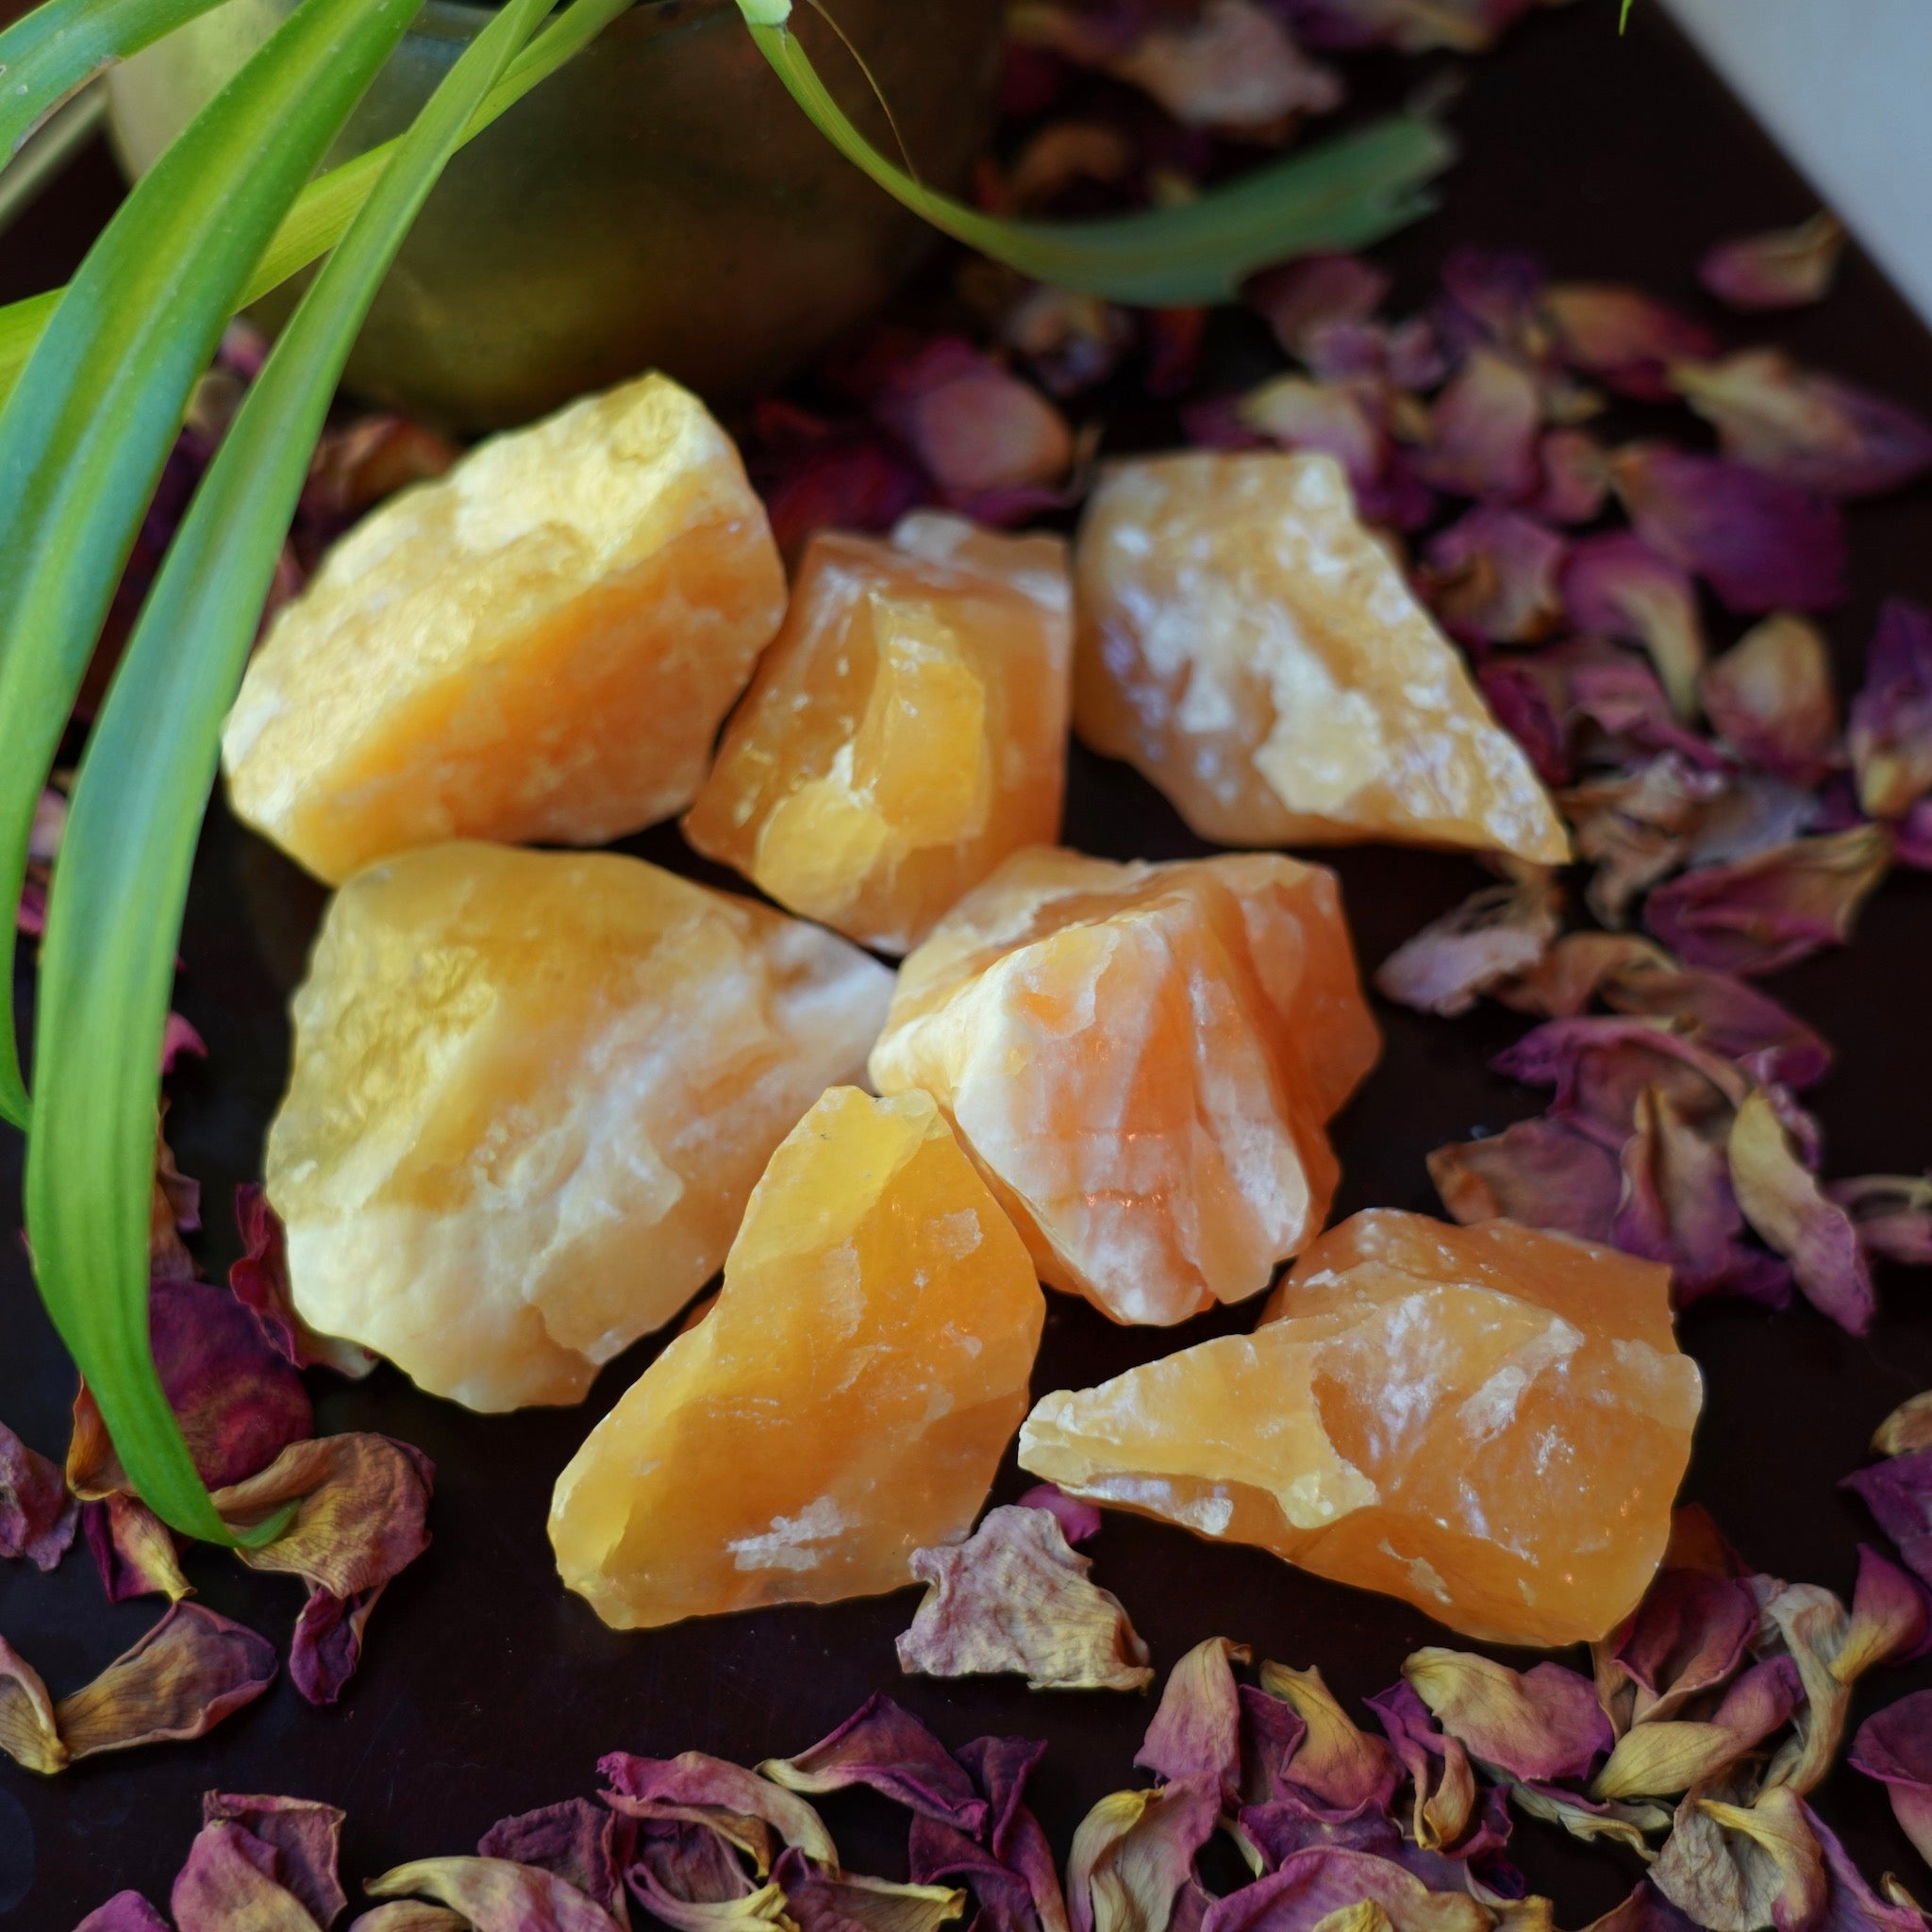 Orange Calcite of Spiritual Integration (Intuitively Selected)